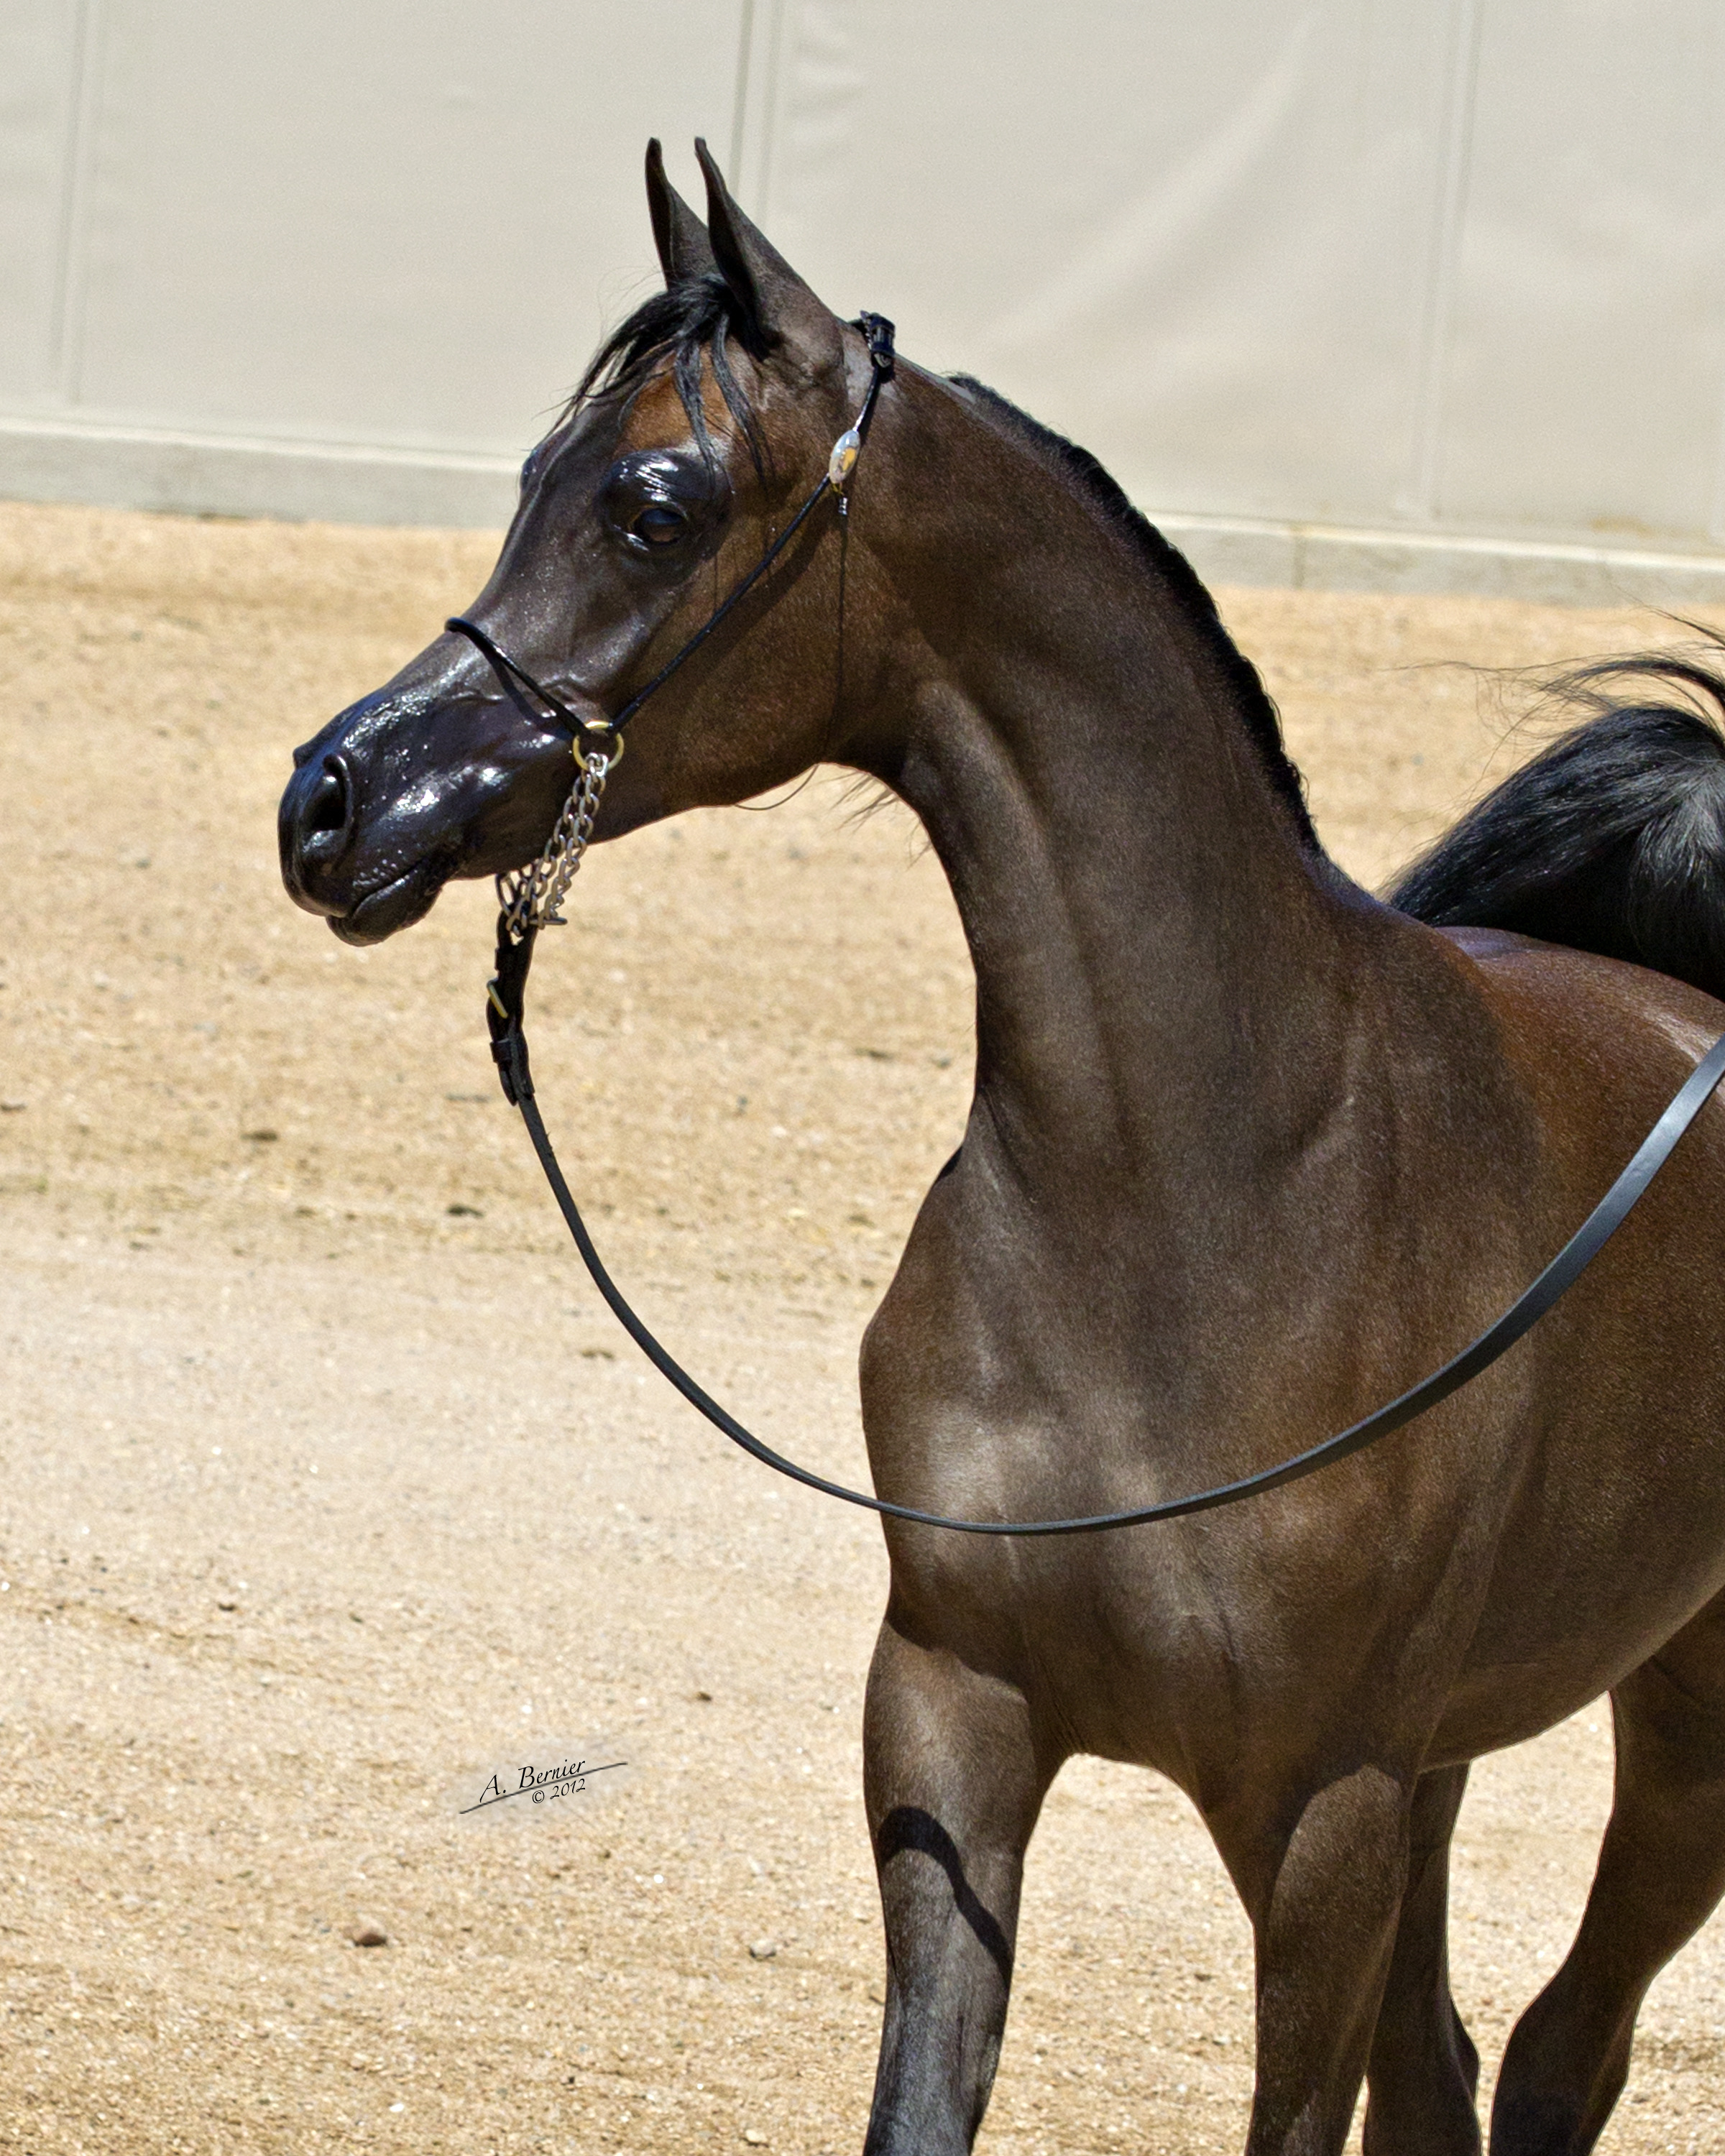 Victoria Cross Farm Arabian Horses Stallions Farms Arabians Horses For Sale Arabian Horse Network